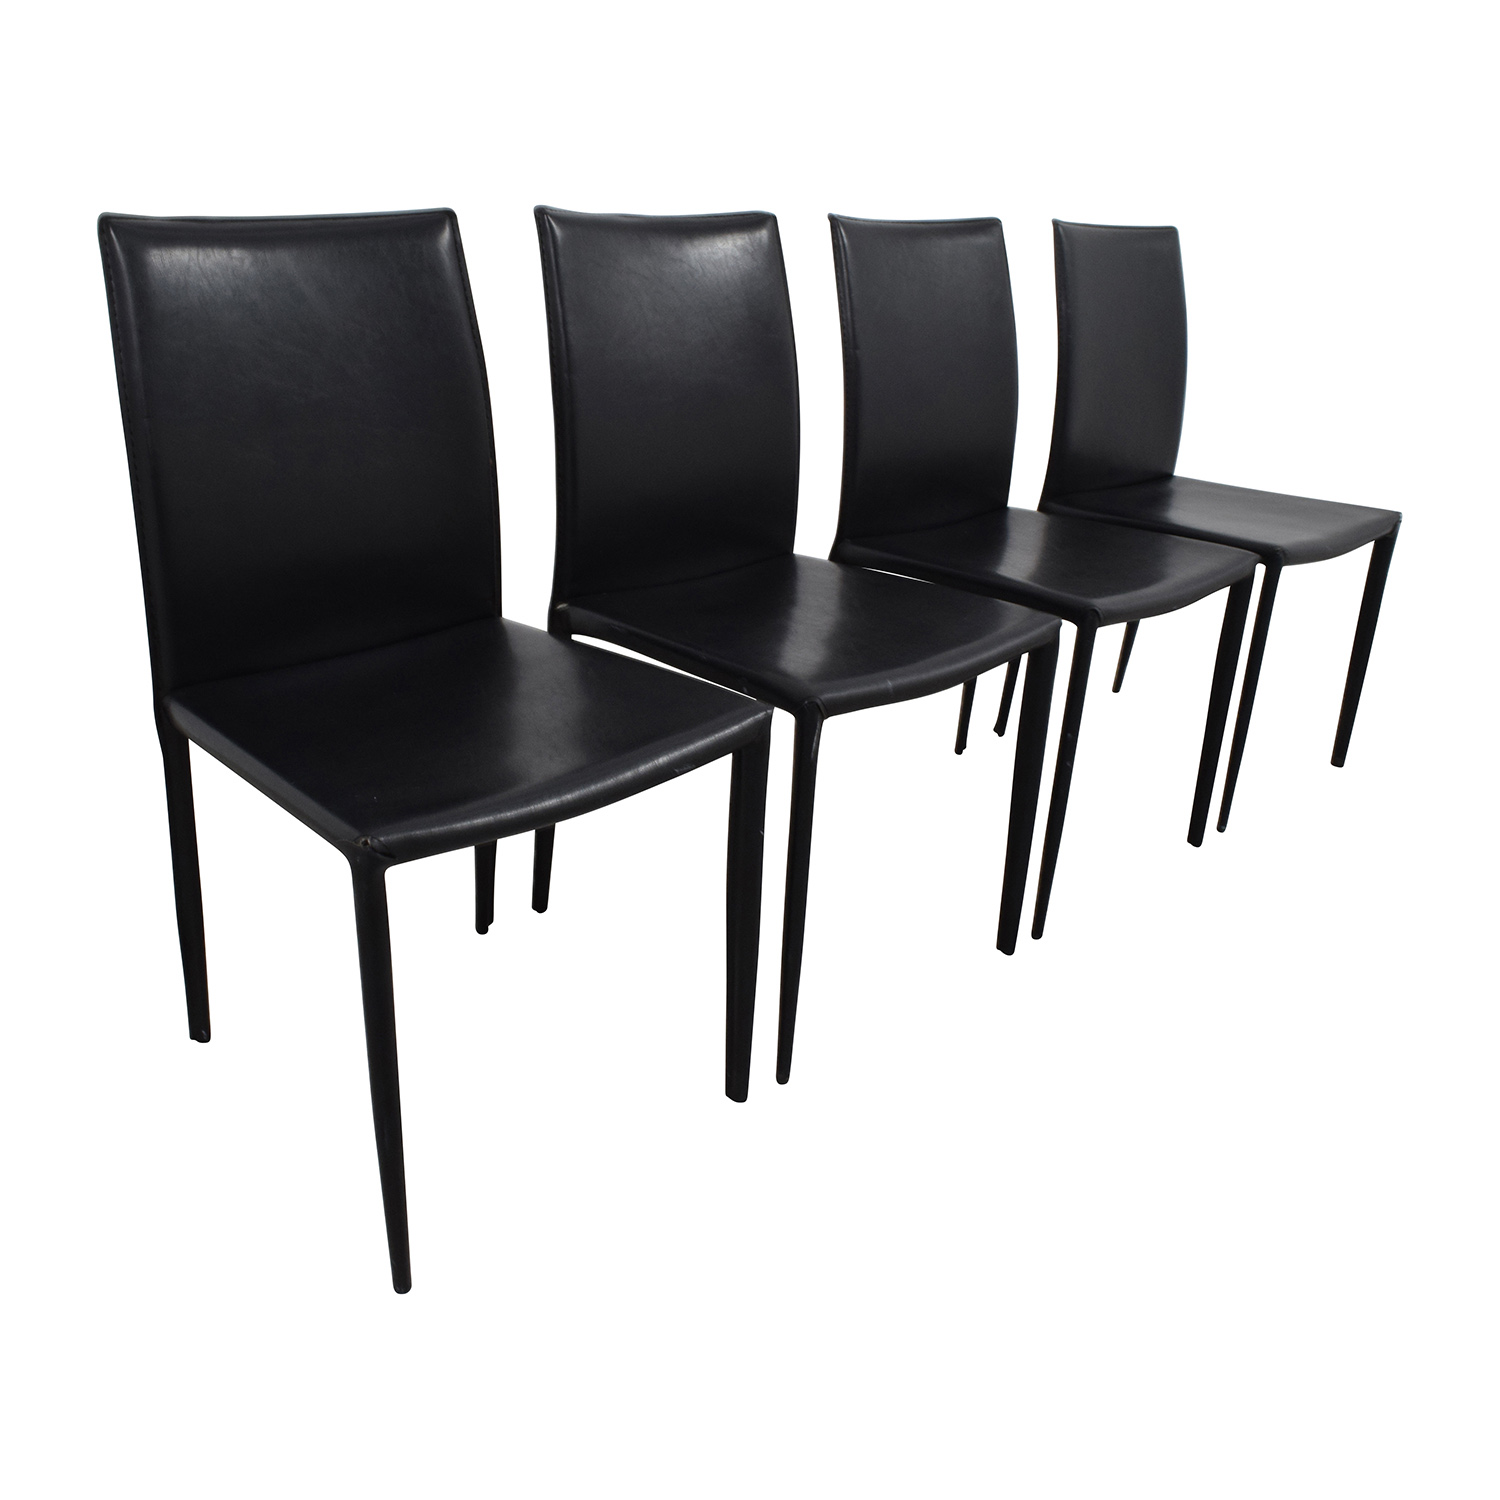 61 off set of four black leather chairs chairs. Black Bedroom Furniture Sets. Home Design Ideas